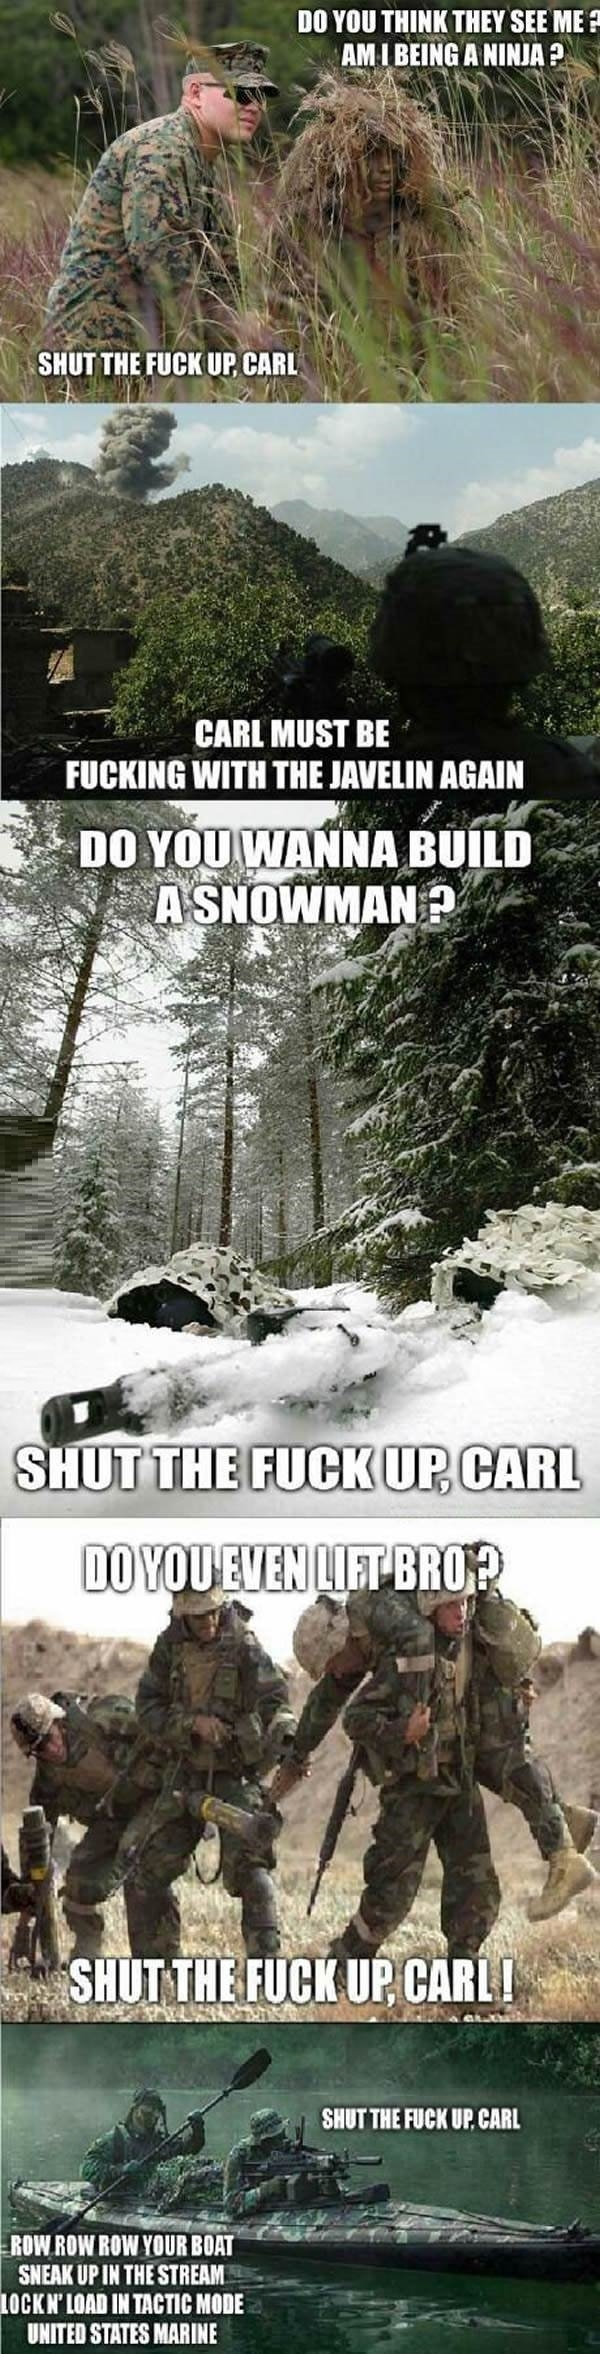 Dammit Carl!